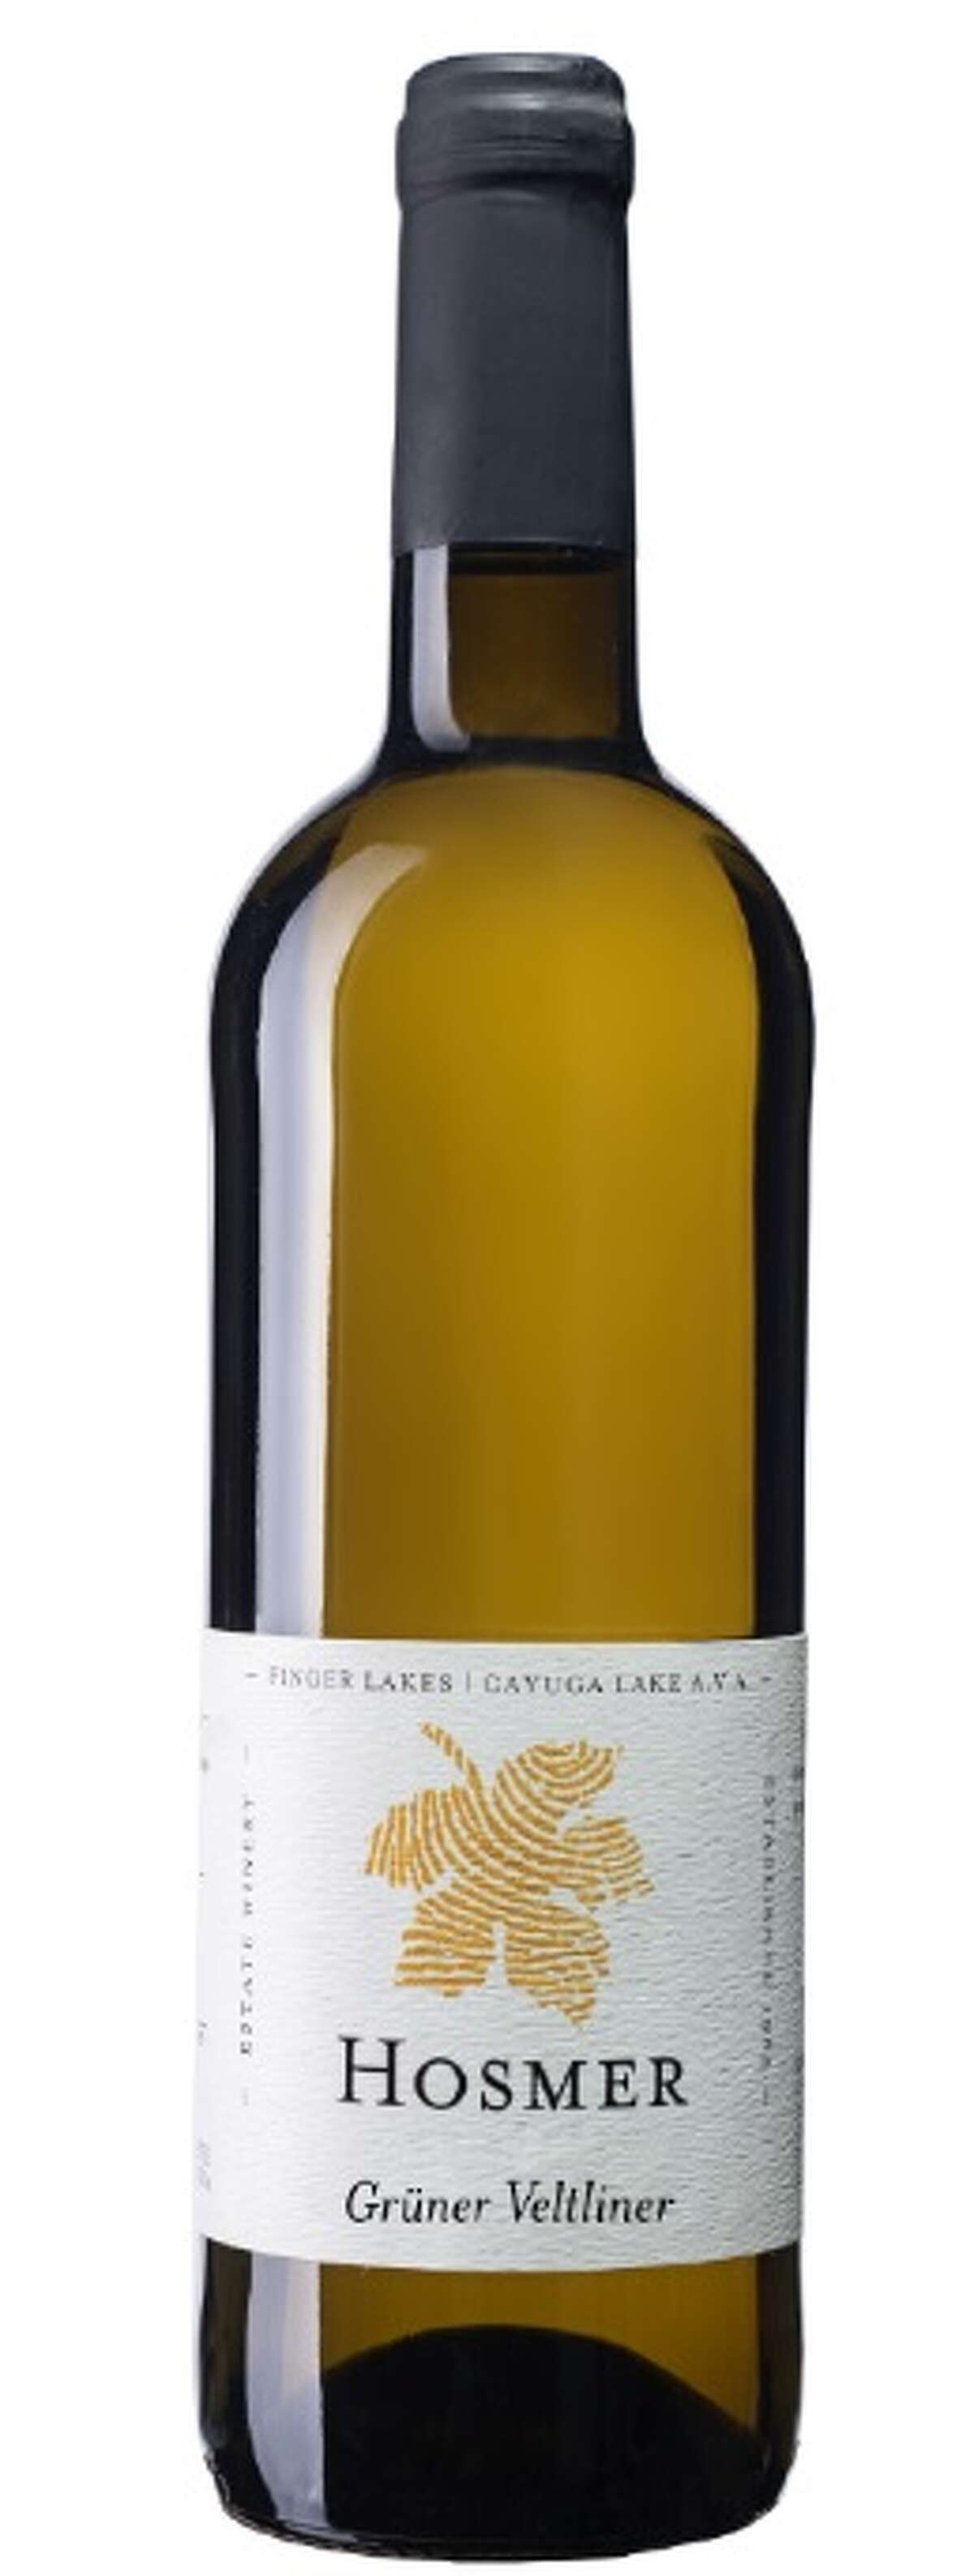 If you tend to drink French sauvignon blancs around the holidays, try a New York-based gruner veltliner, like this one from Hosmer Winery.